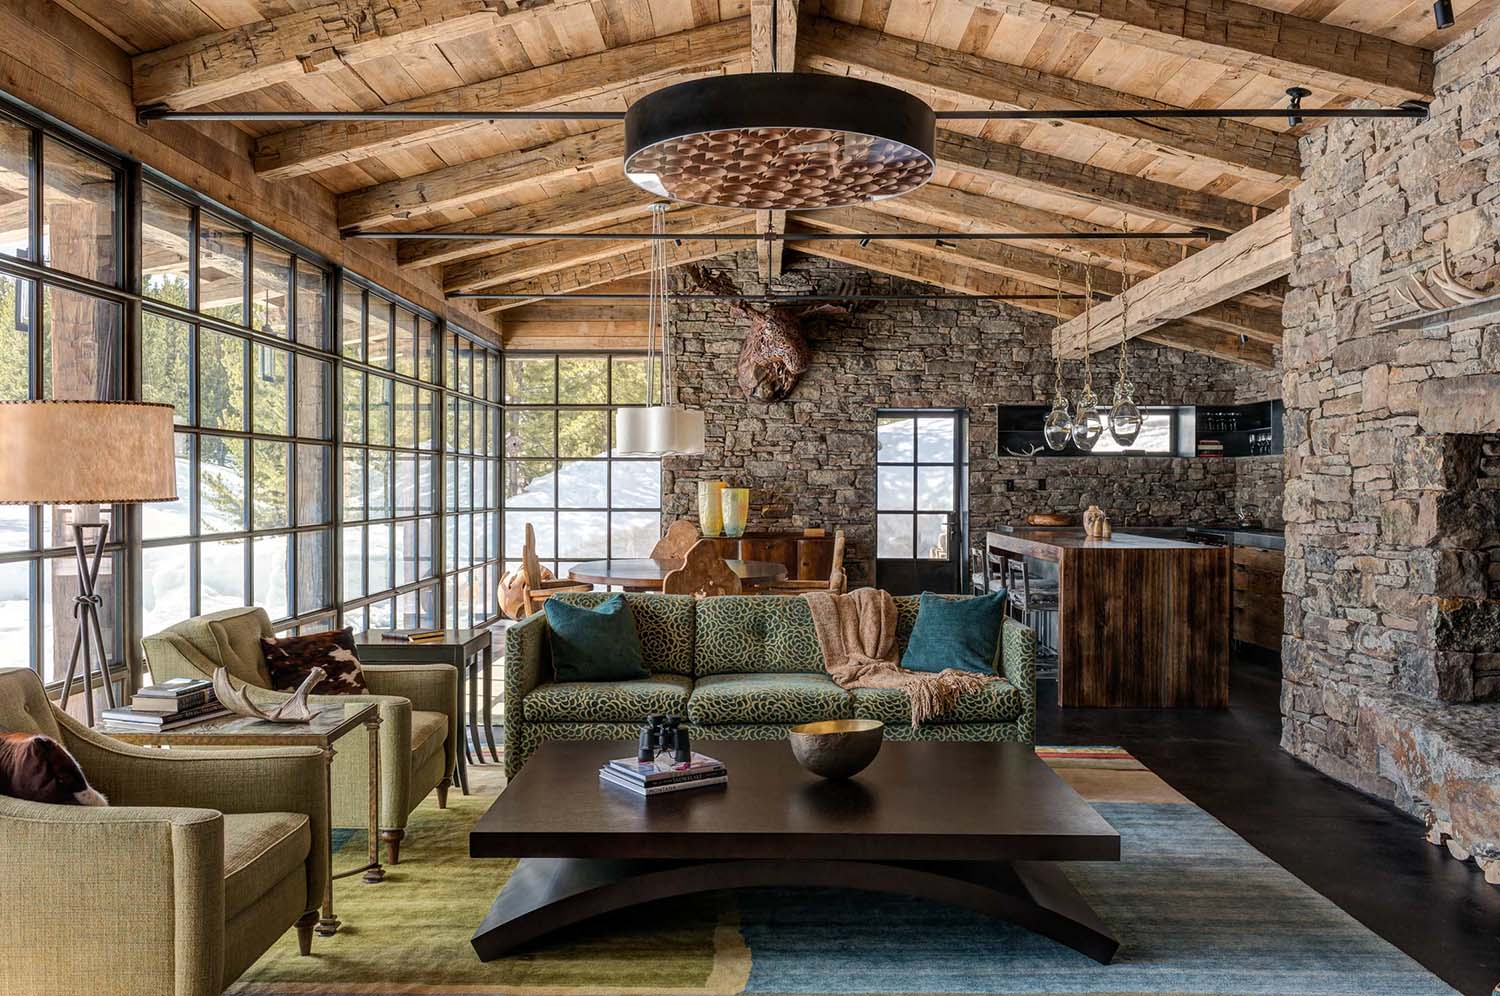 Hot on Instagram 🔥 Discover The 10 Rustic Design Houses Everyone is Talking About! rustic design houses Hot on Instagram 🔥 Discover The 10 Rustic Design Houses Everyone is Talking About! 4 5